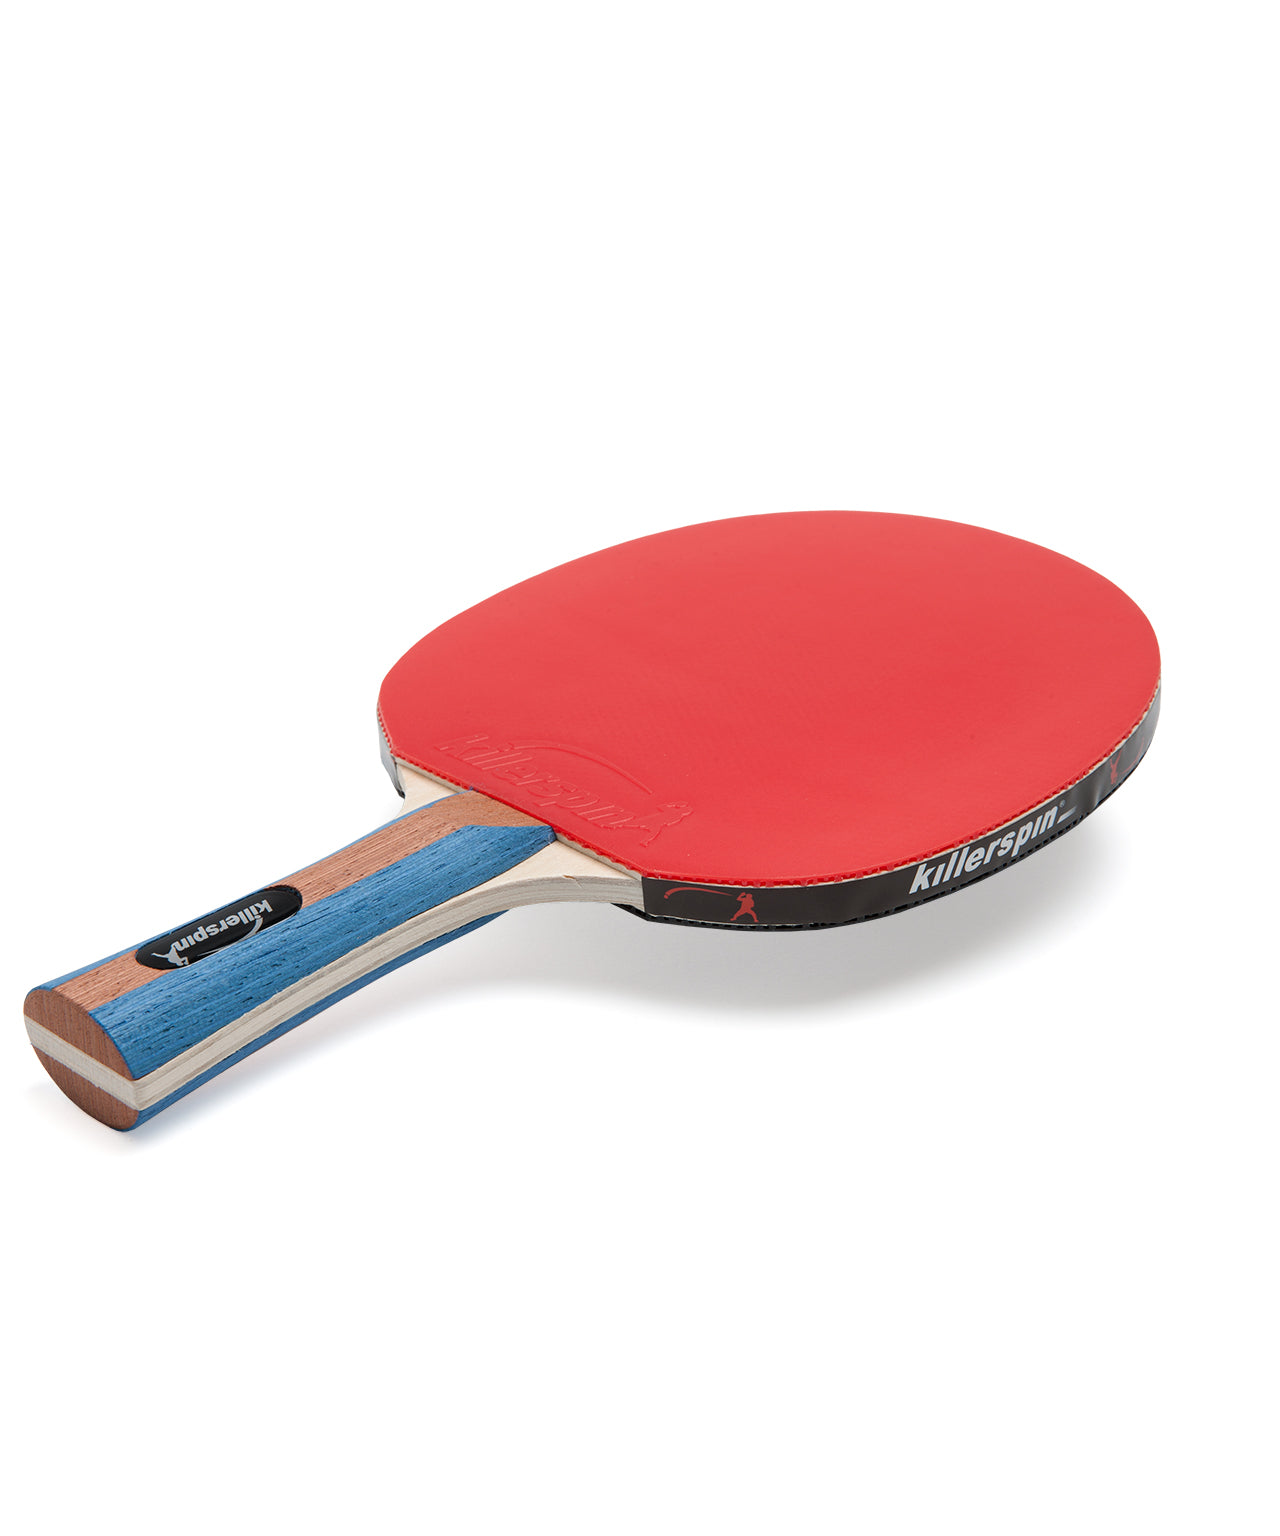 Killerspin Ping Pong Paddle Set JetSet4 Premium - Red Rubber